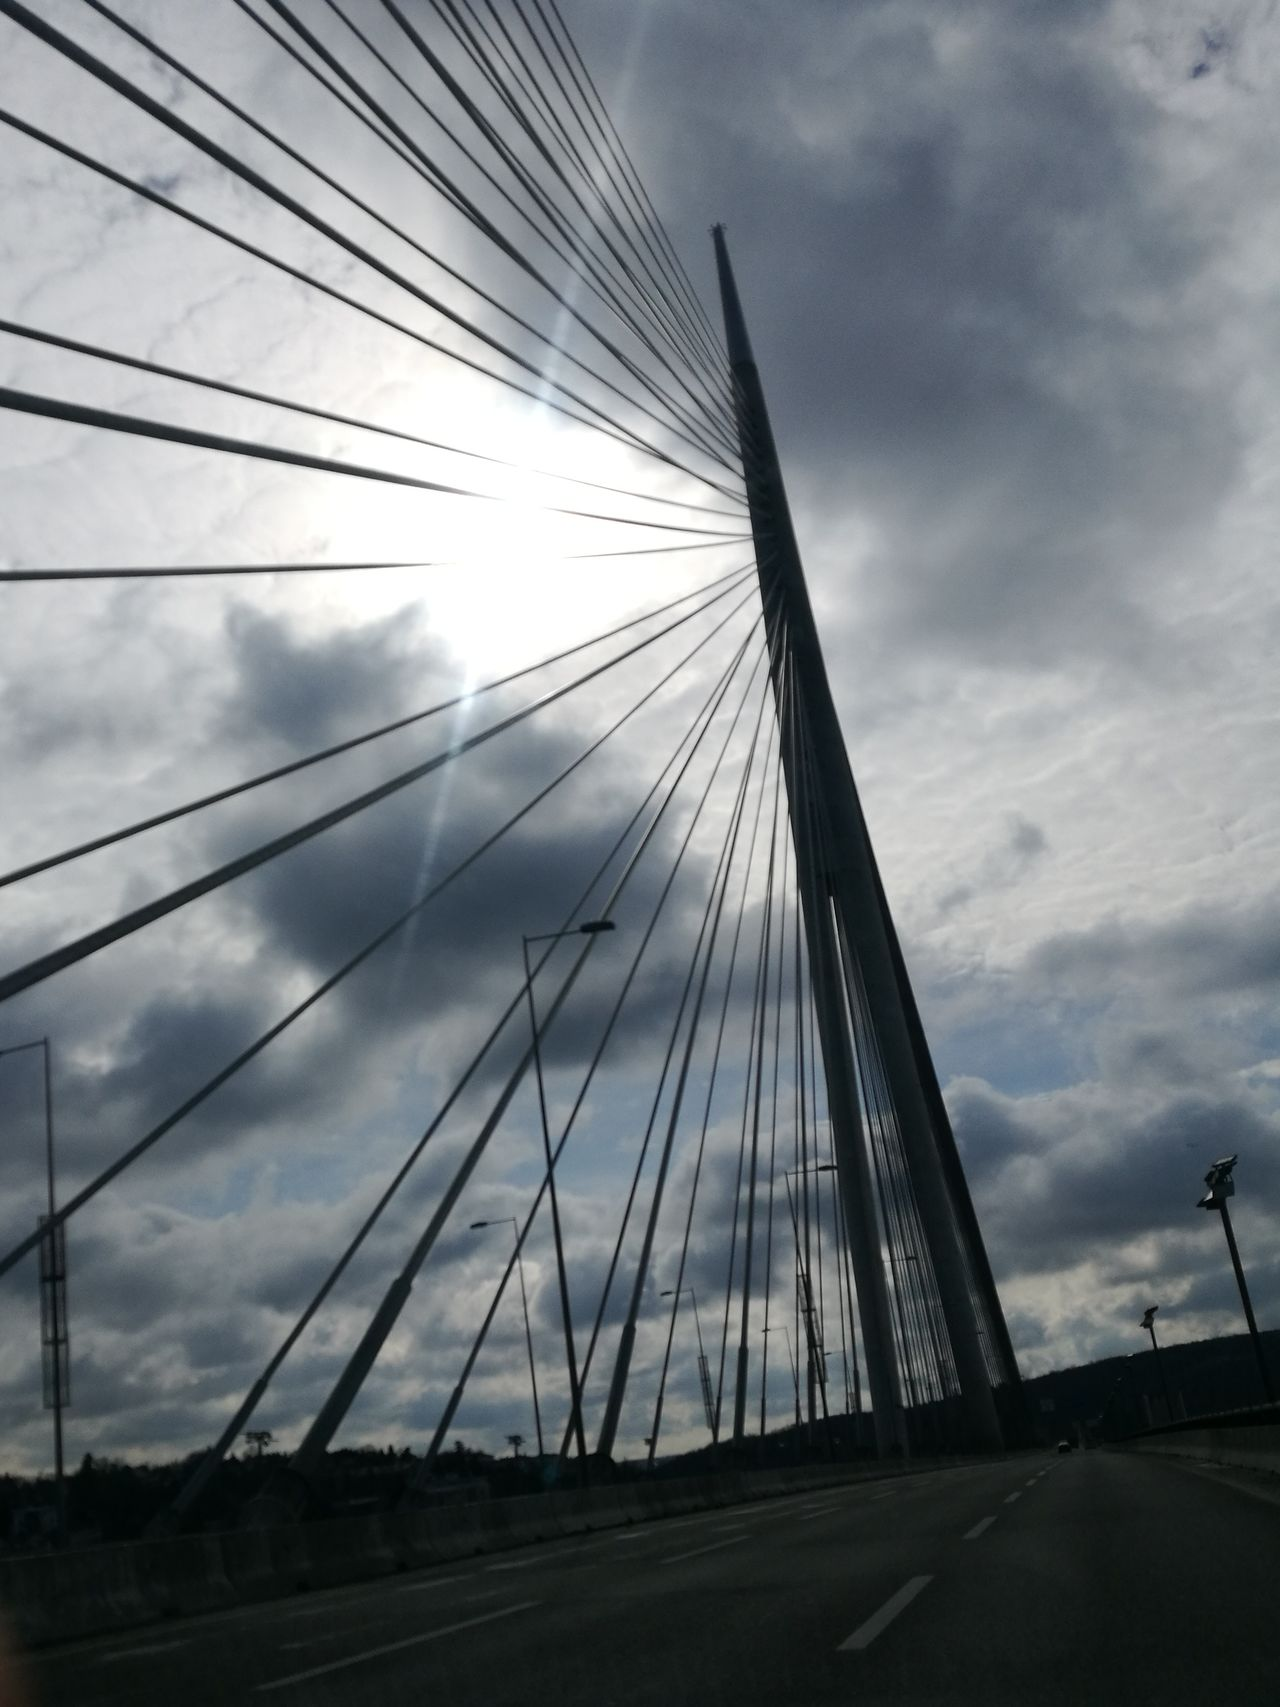 Suspension Bridge Bridge - Man Made Structure Cloud - Sky Transportation Sky Traffic Cable-stayed Bridge Built Structure Road Travel Car Day Connection Travel Destinations Sunlight Sunset Silhouettes Sunbeam Sadness